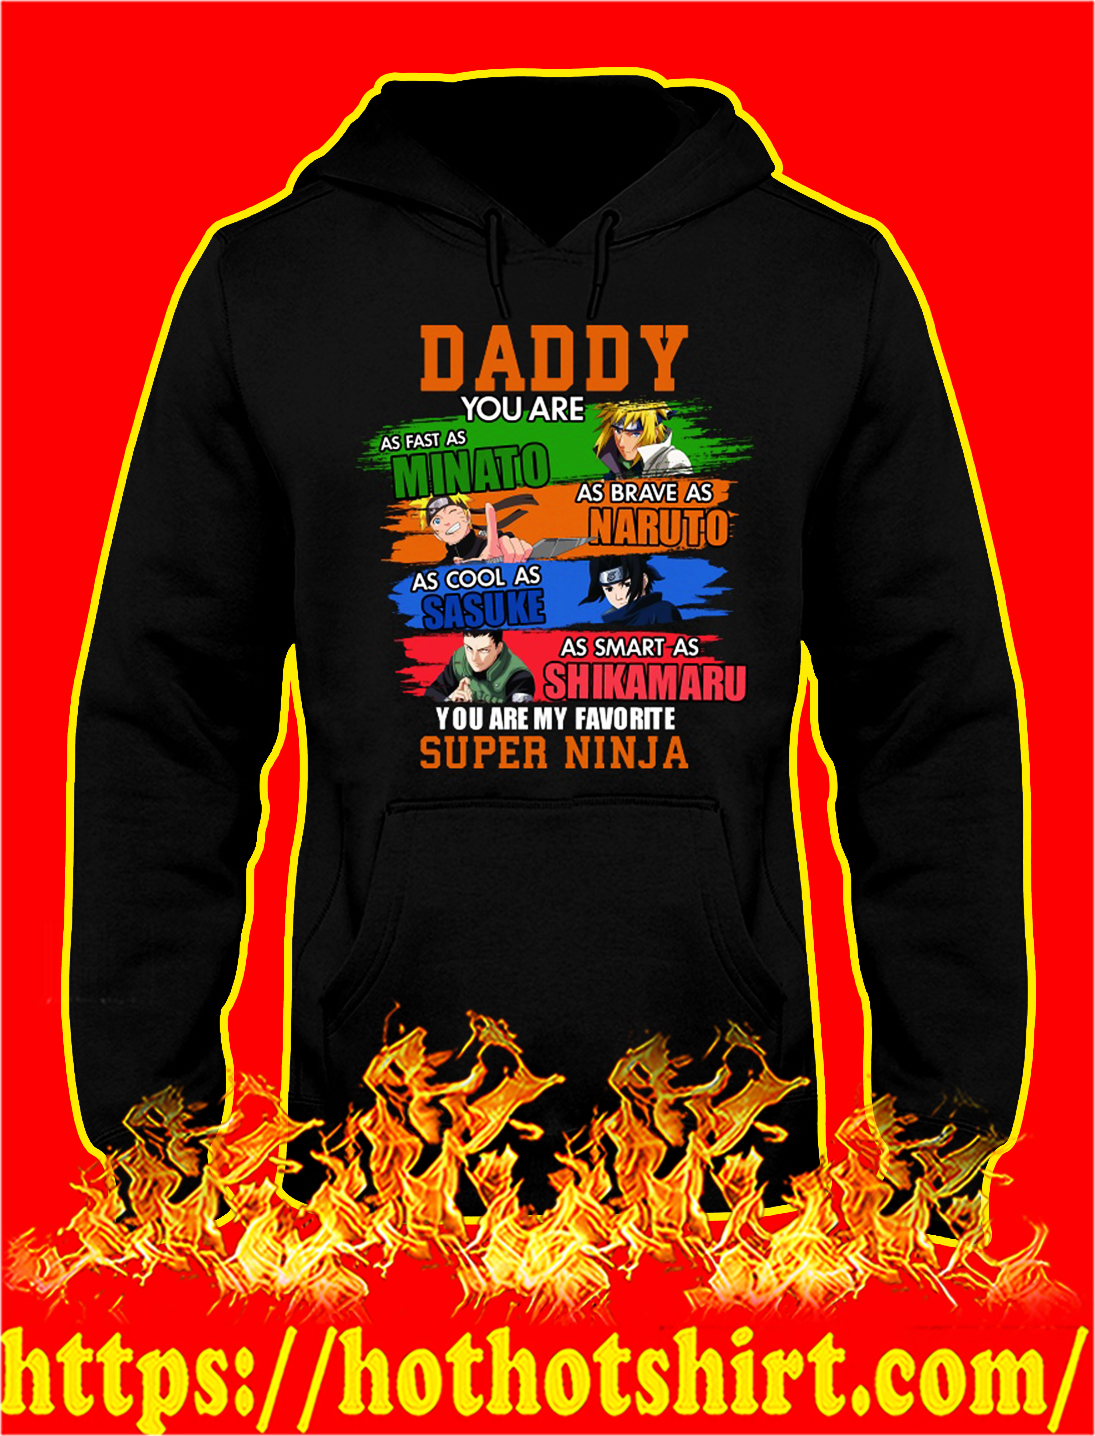 Daddy you are as fast as minato as brave as naruto hoodie